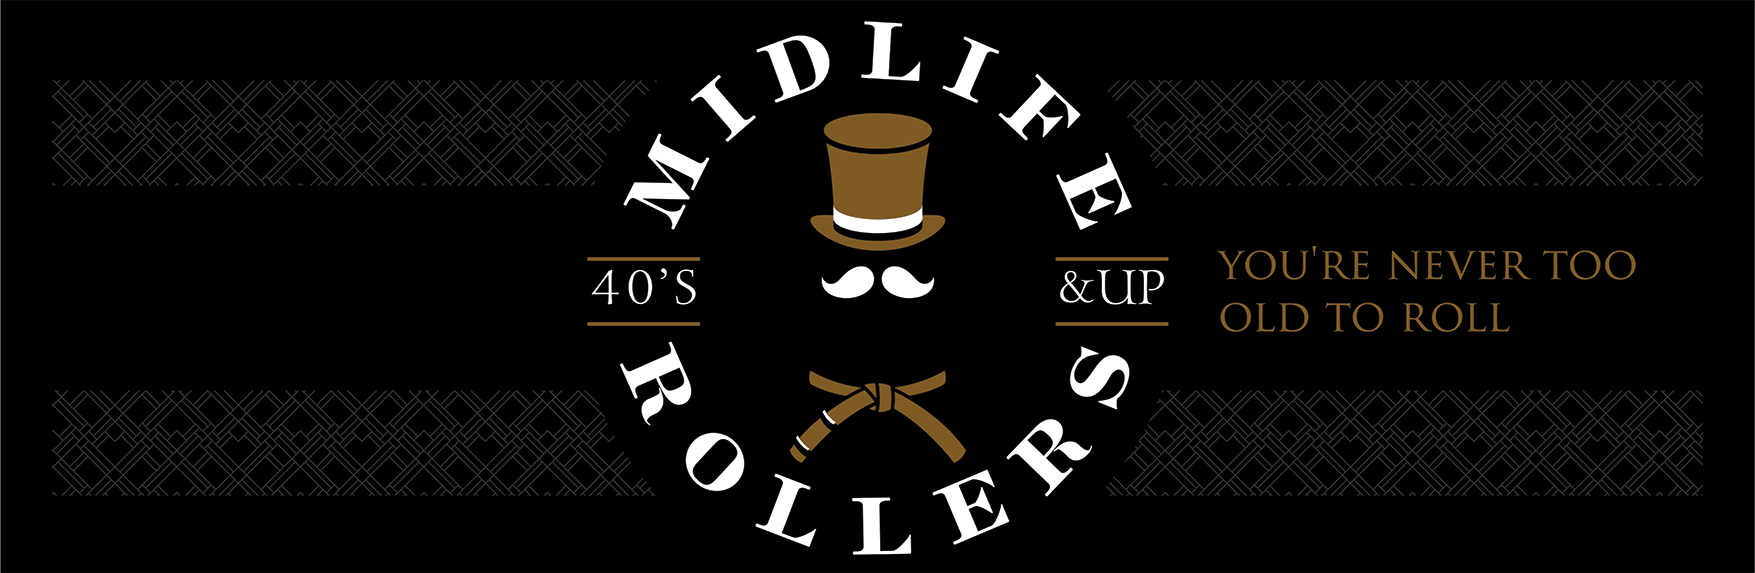 Midlife Rollers Community